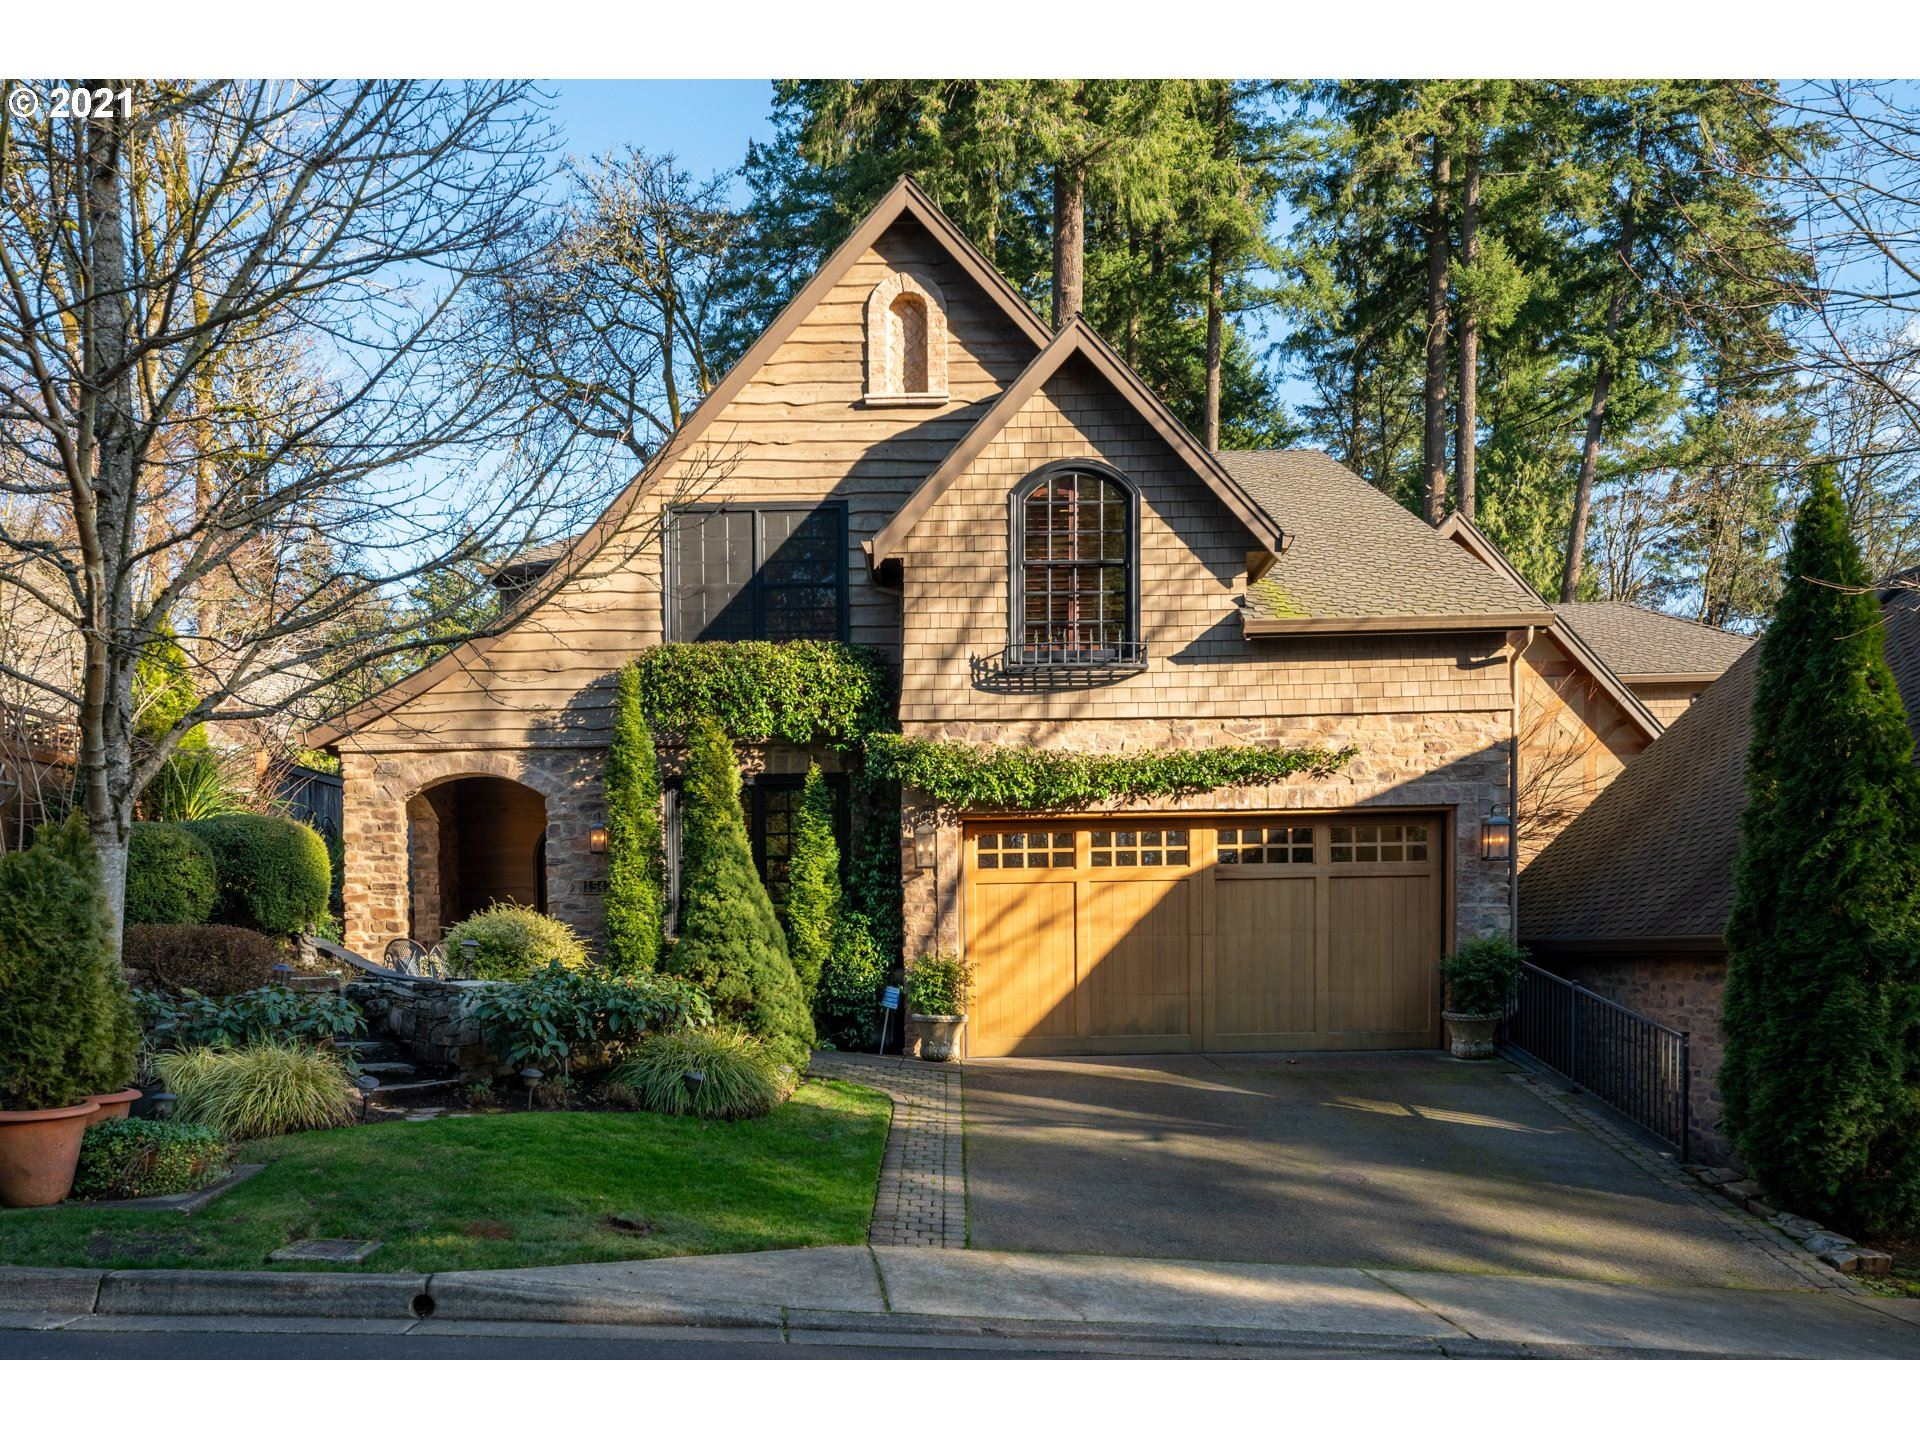 Photo for 15420 BOONES WAY, Lake Oswego, OR 97035 (MLS # 21409019)